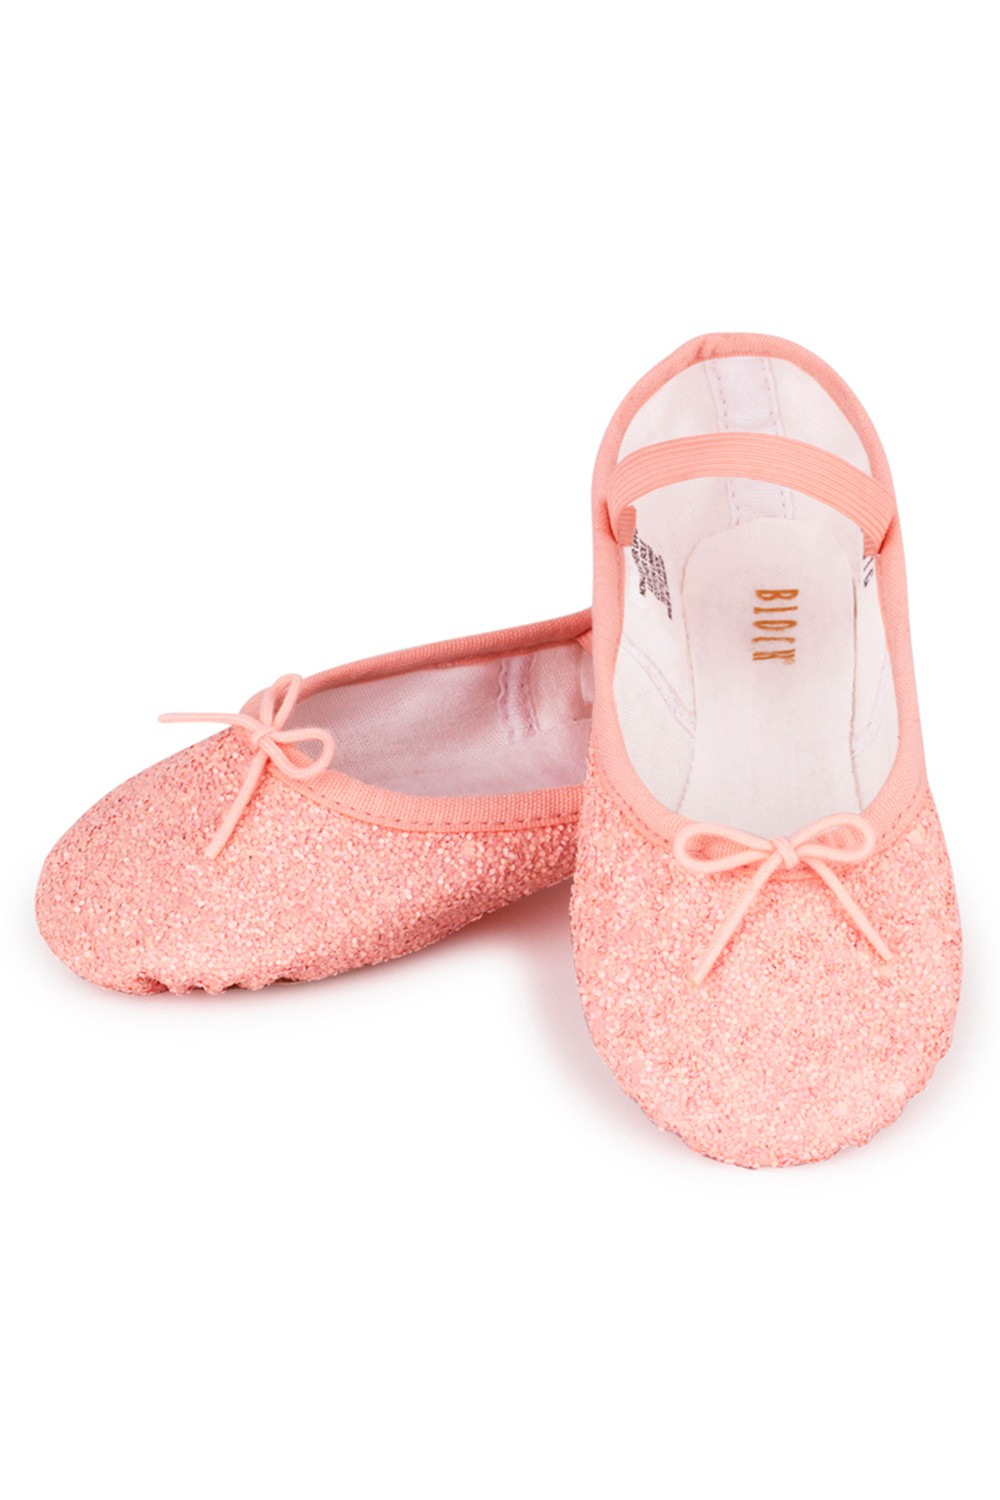 Sparkle - Niñas Girl's Ballet Shoes